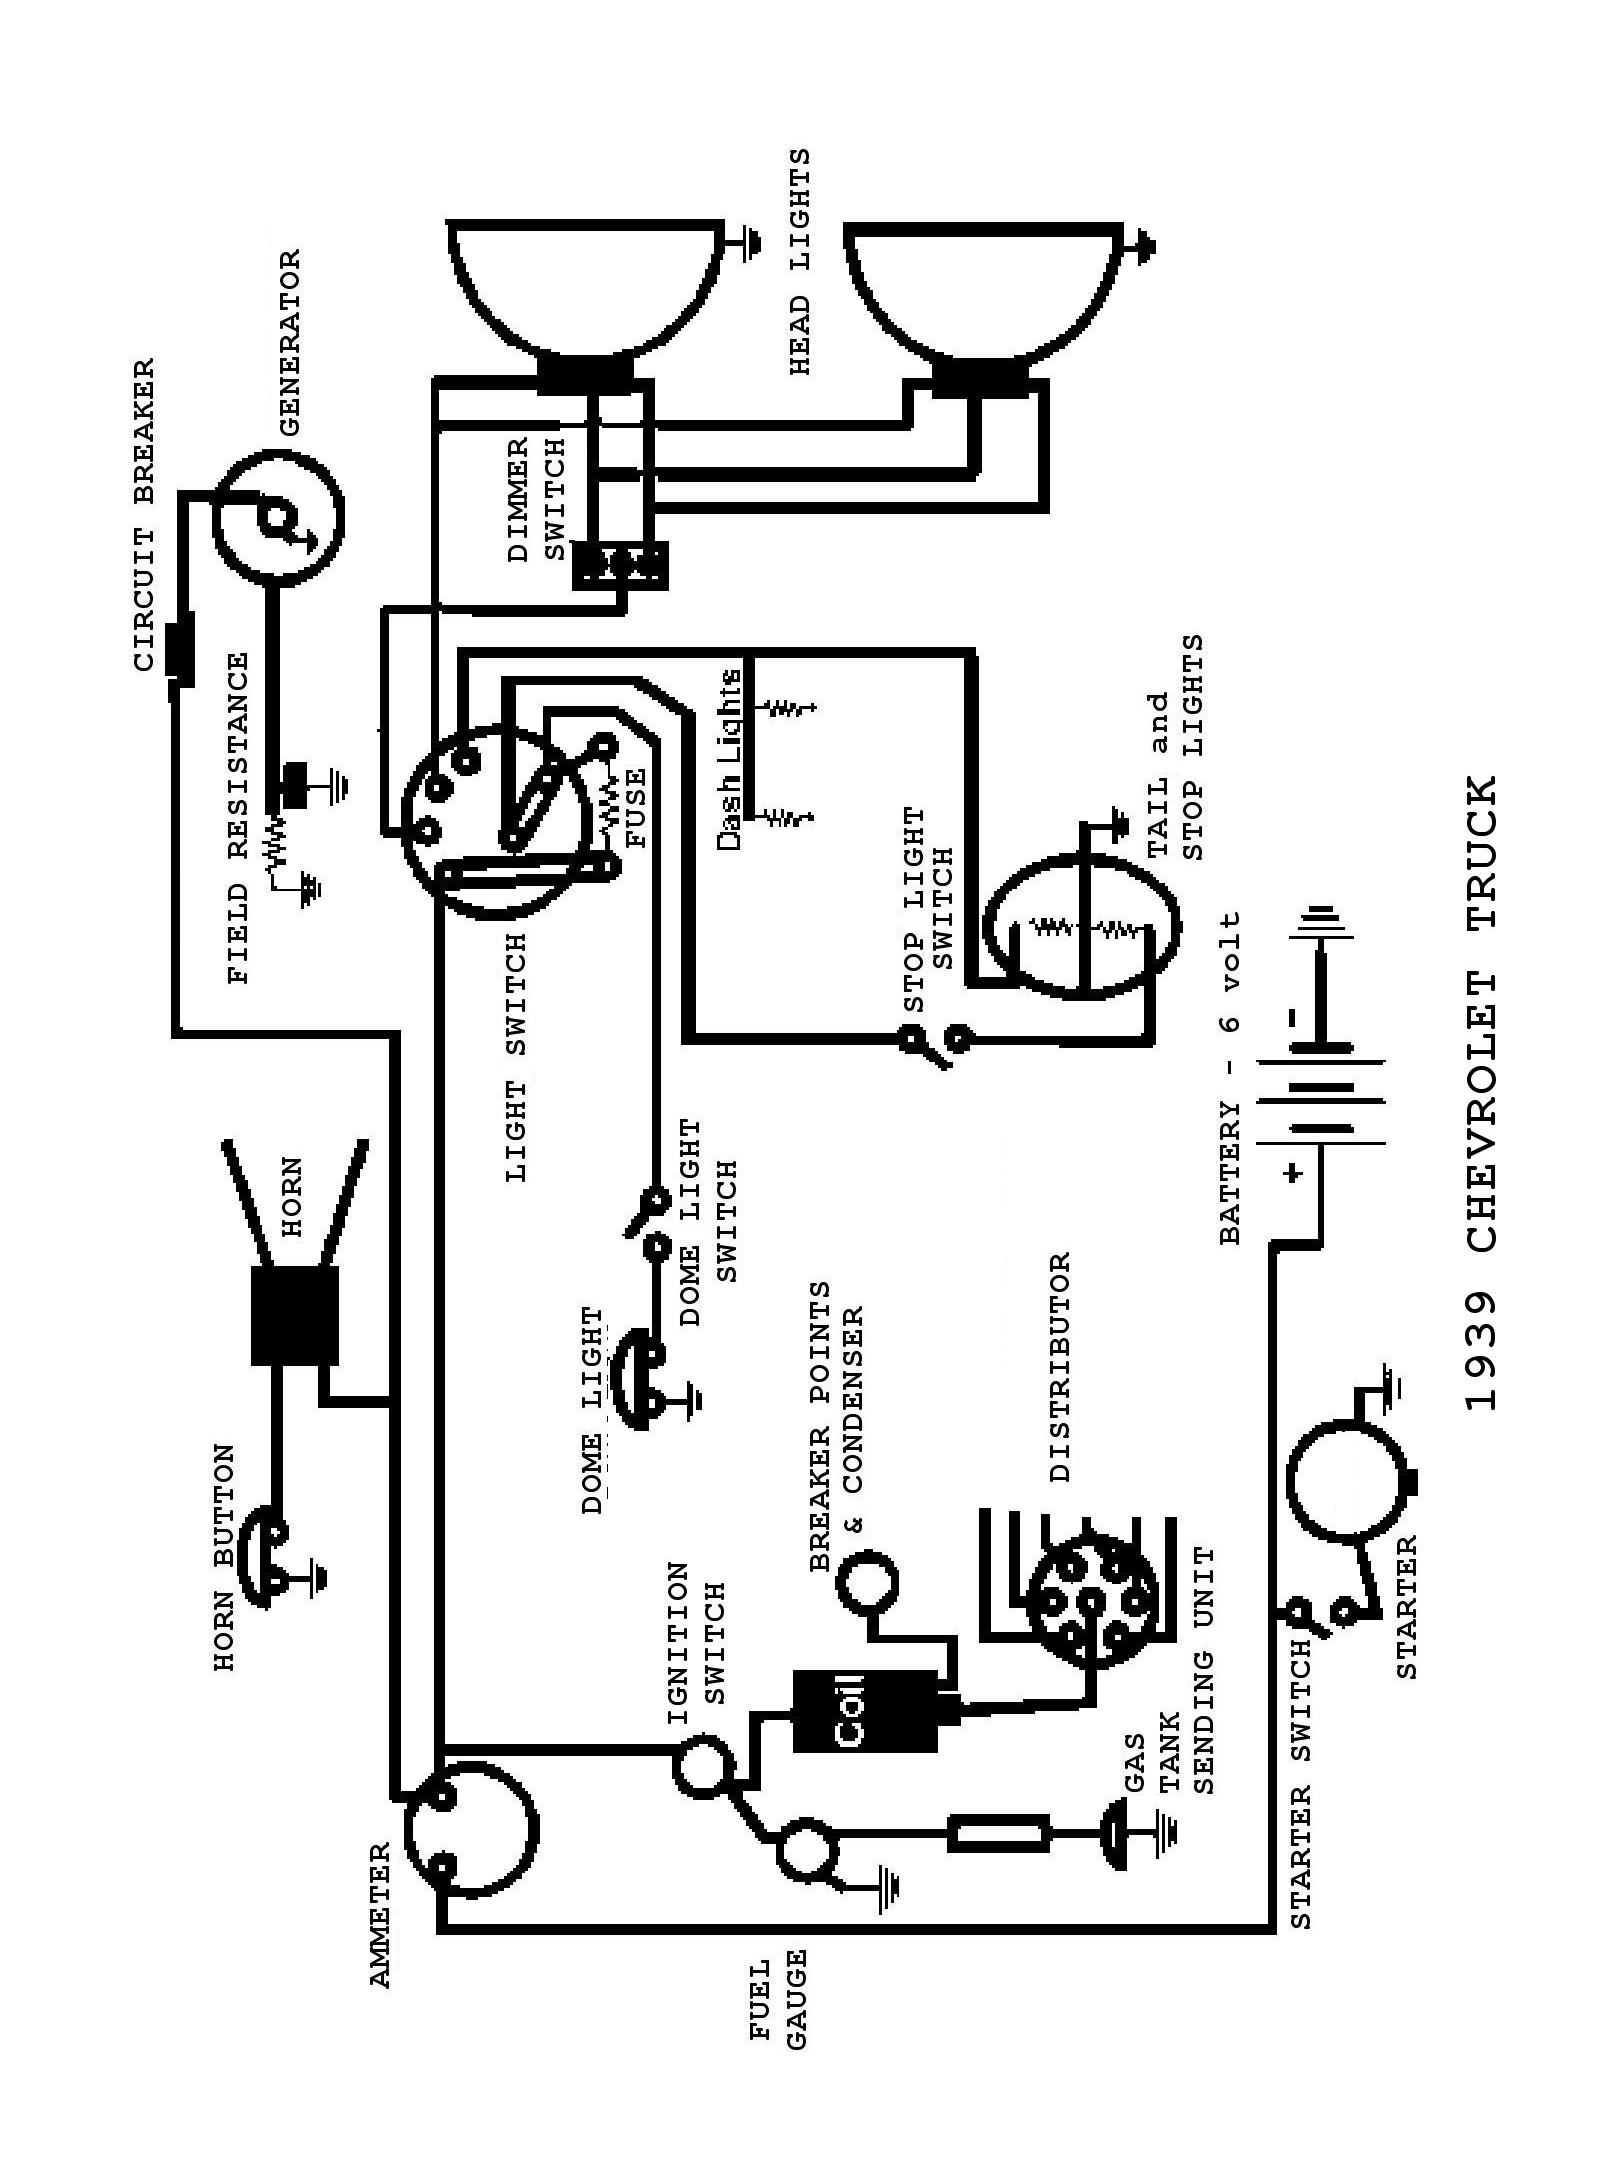 39truck ihc truck wiring diagrams mazda truck wiring diagrams \u2022 free  at gsmportal.co